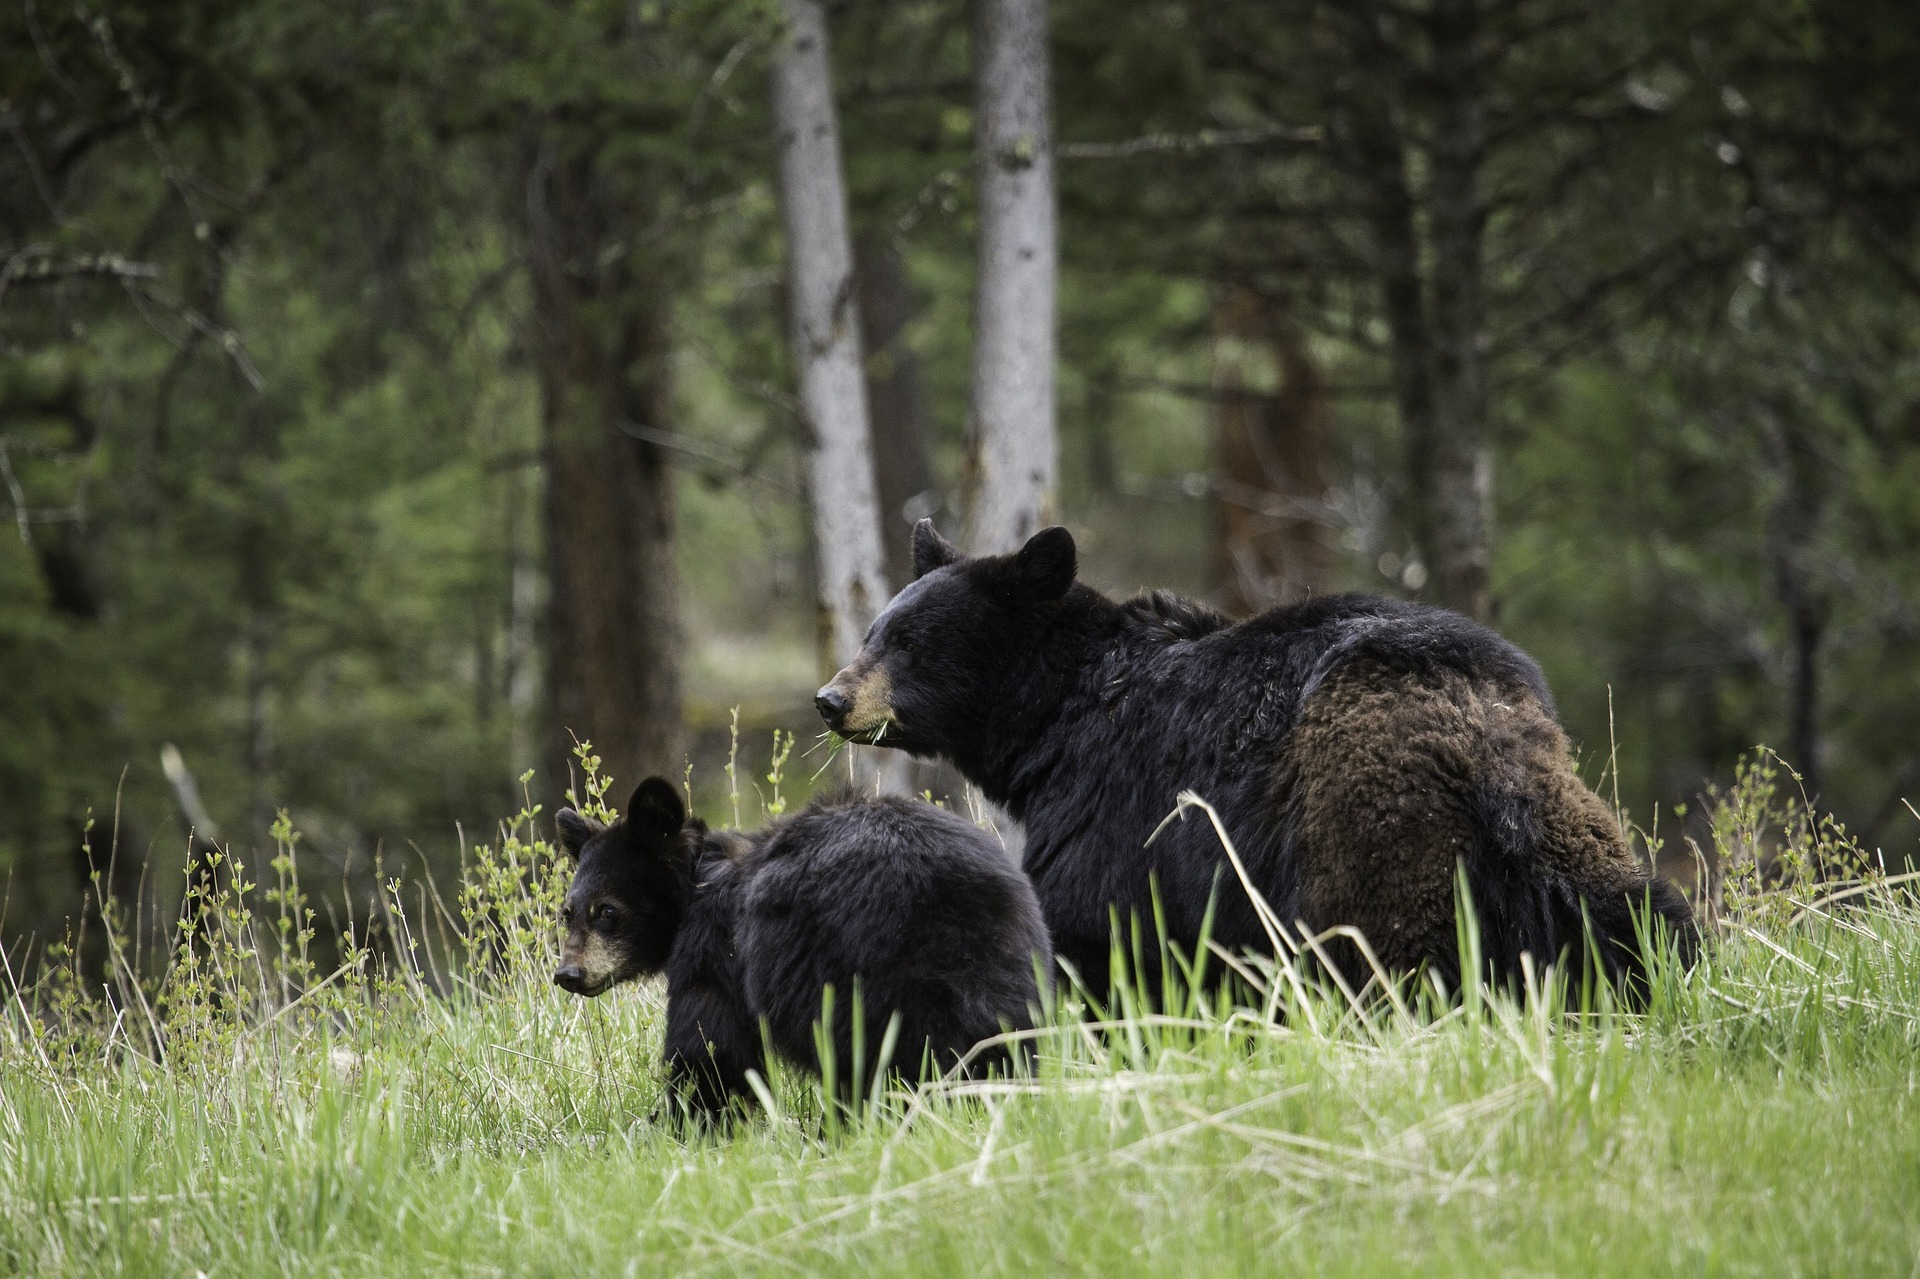 A pair of wild black bears grazing a grassy field.